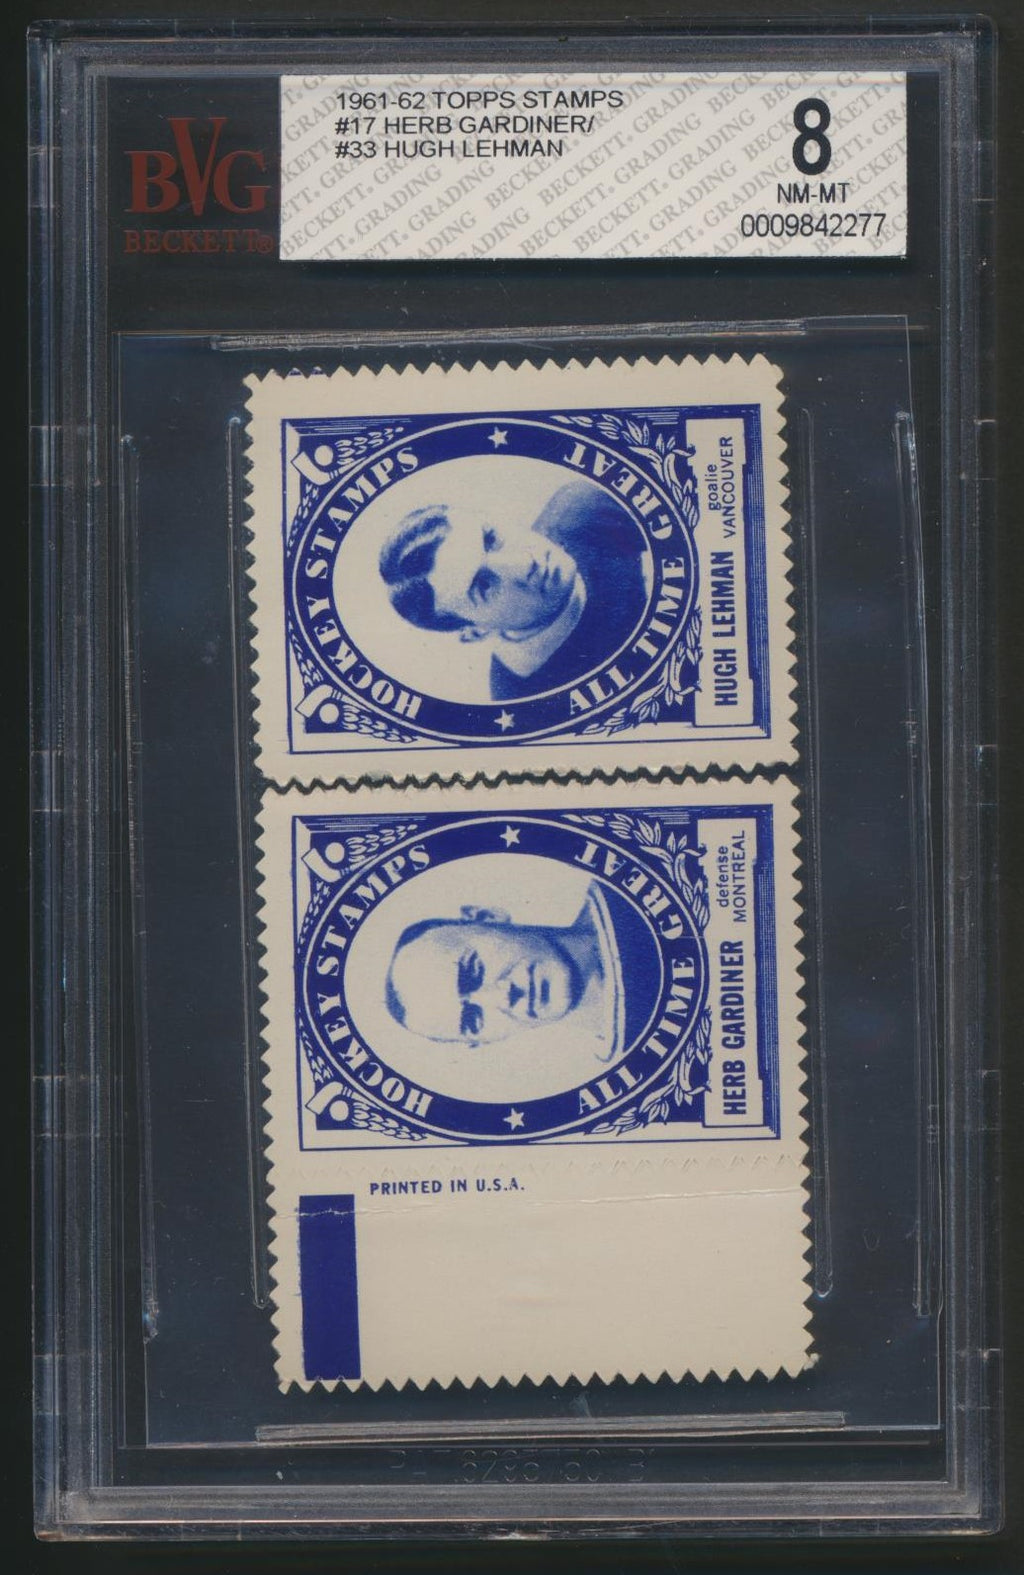 Rare Graded 1961-62 Topps Hockey Inserts Stamp Pairs  H.Gardiner/ Lehman Panel